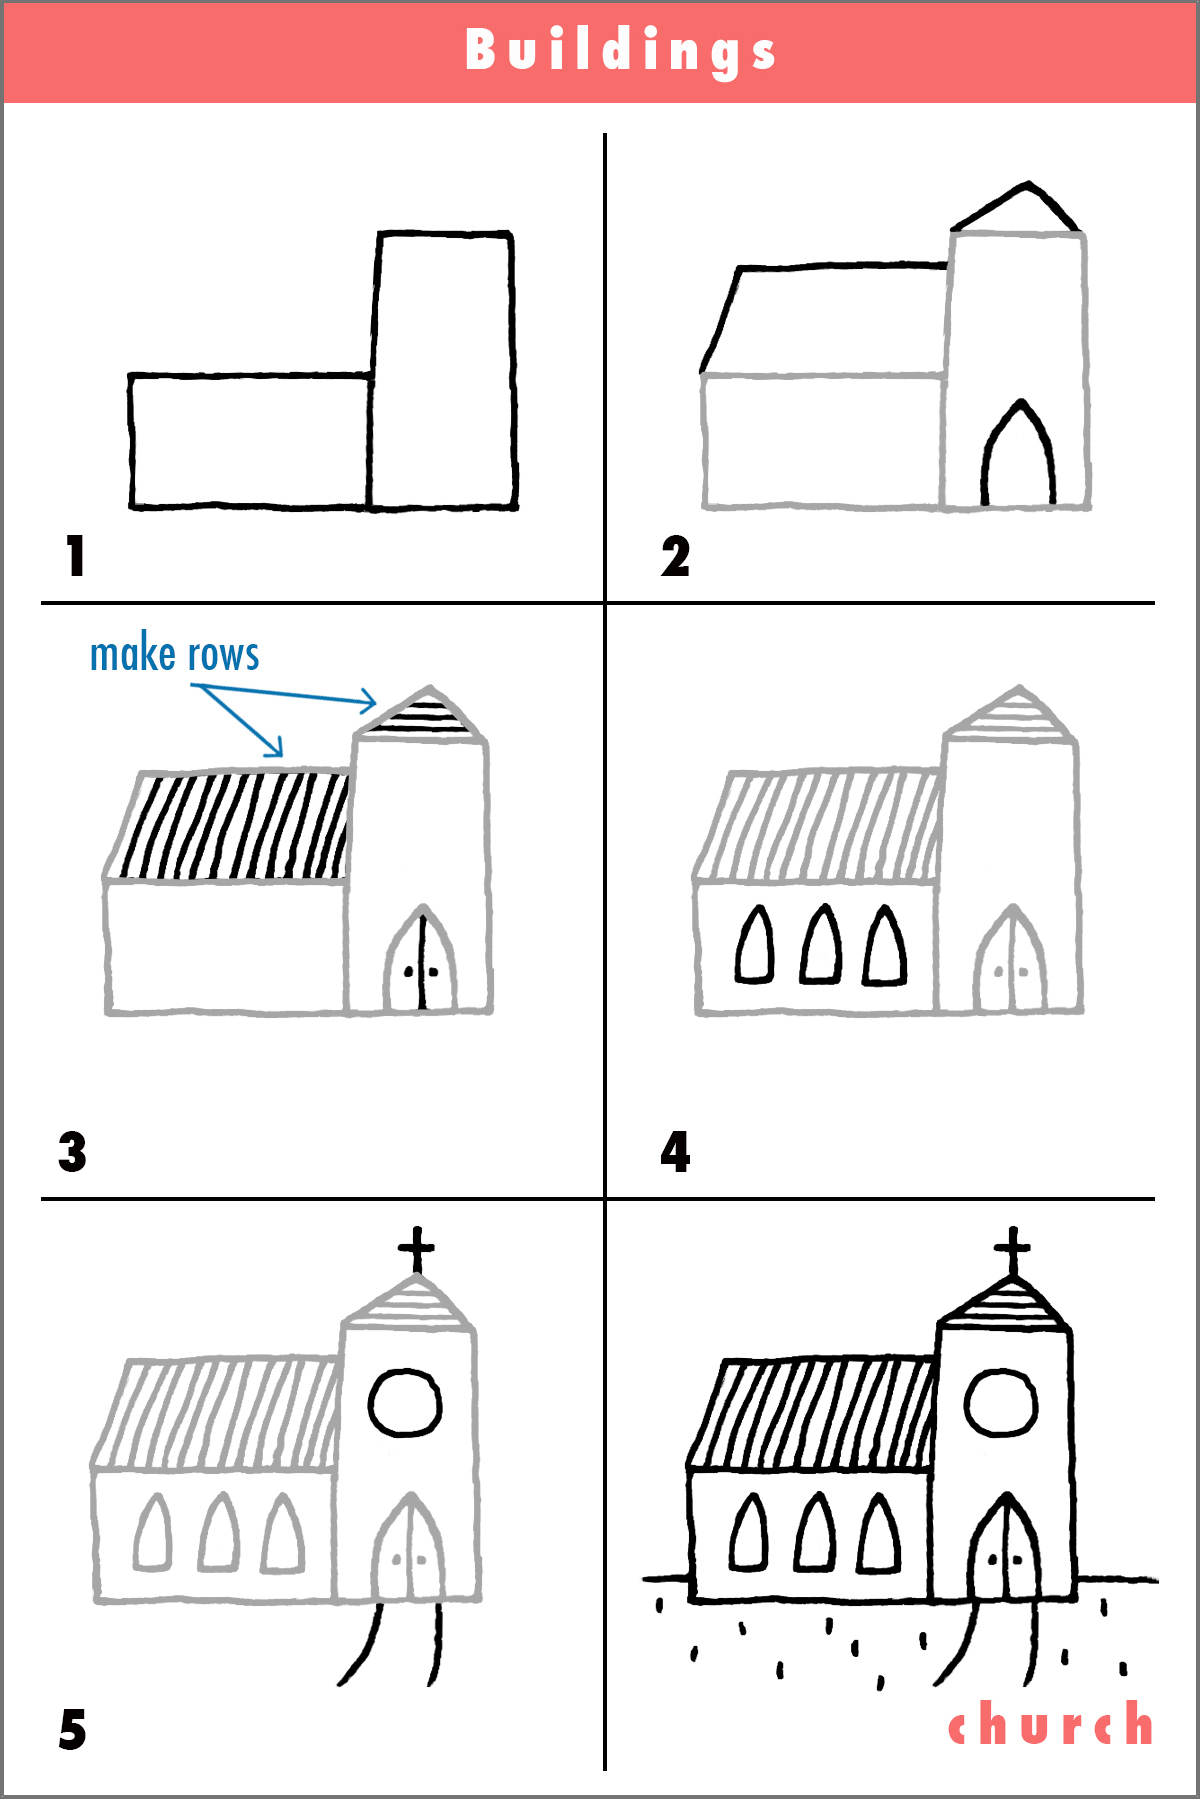 Draw with rich fun step by step cartoon drawings and for Building a house step by step